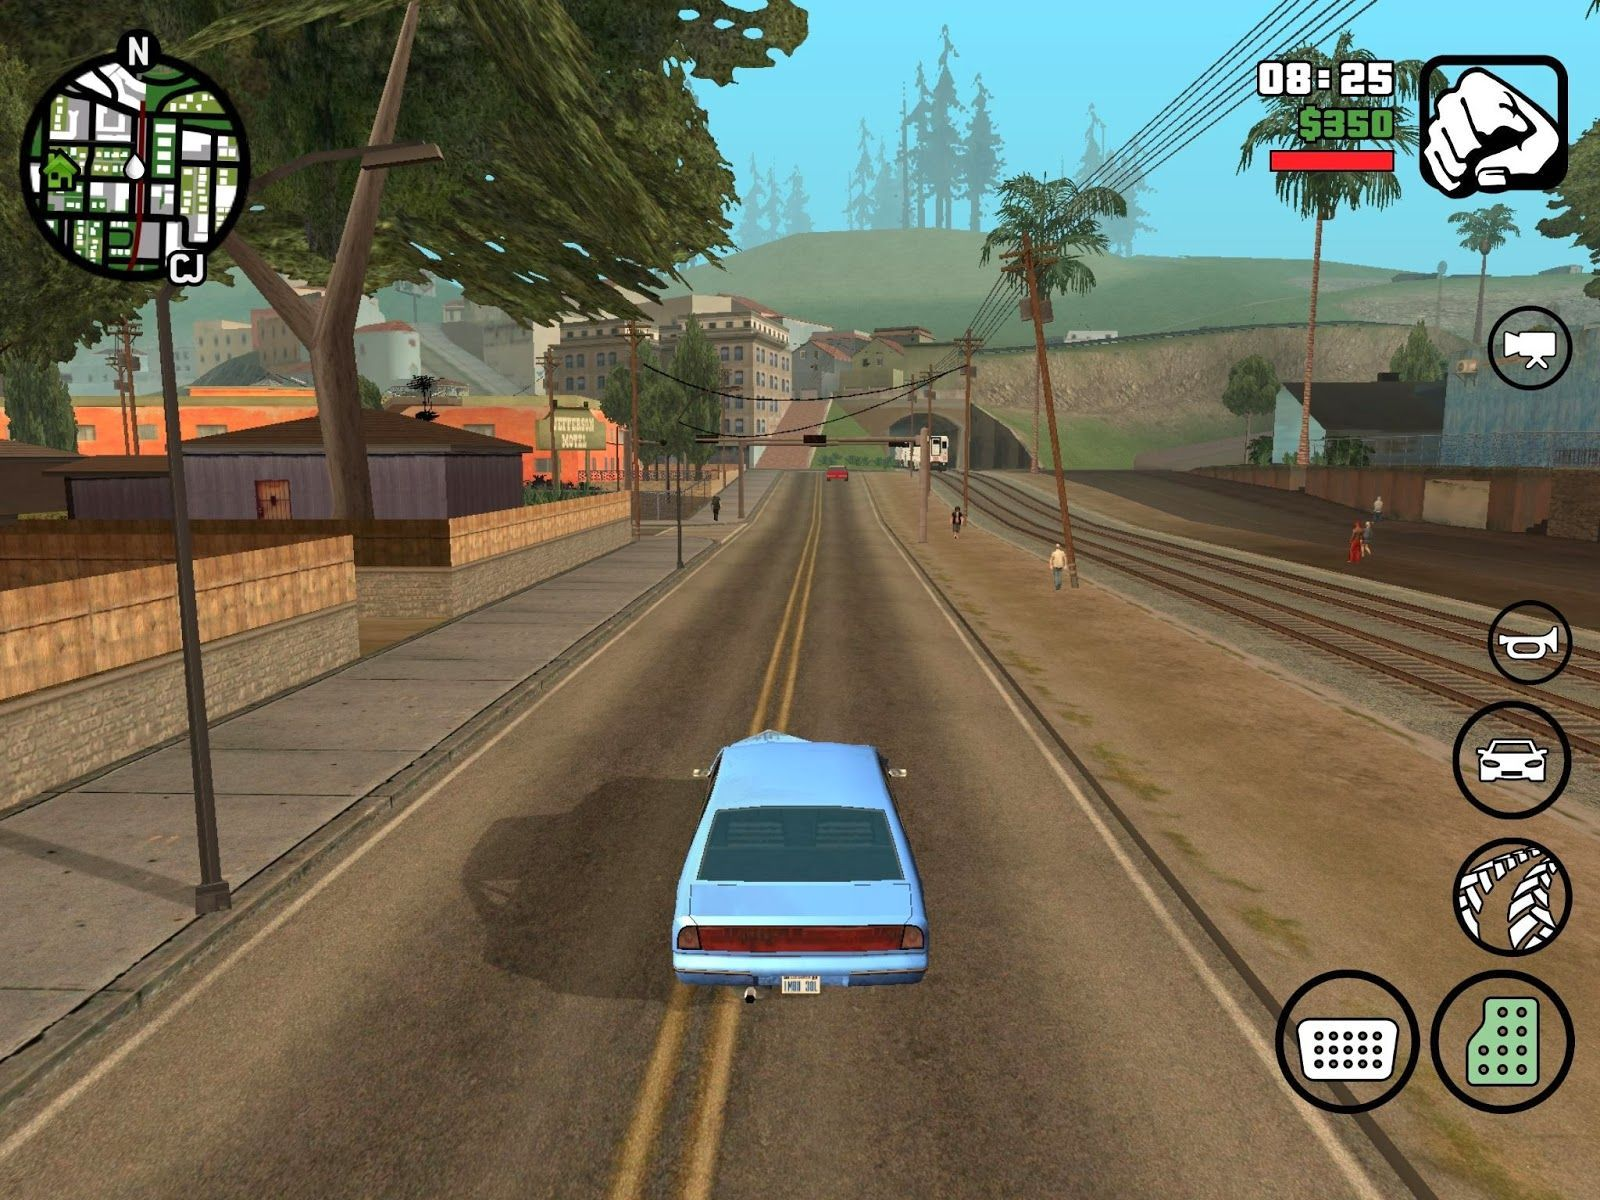 Gta San Andreas Android Cheat Mod Apk Free Download Unlimited Ammogod Modmoney No Root San Andreas Grand Theft Auto San Andreas Game